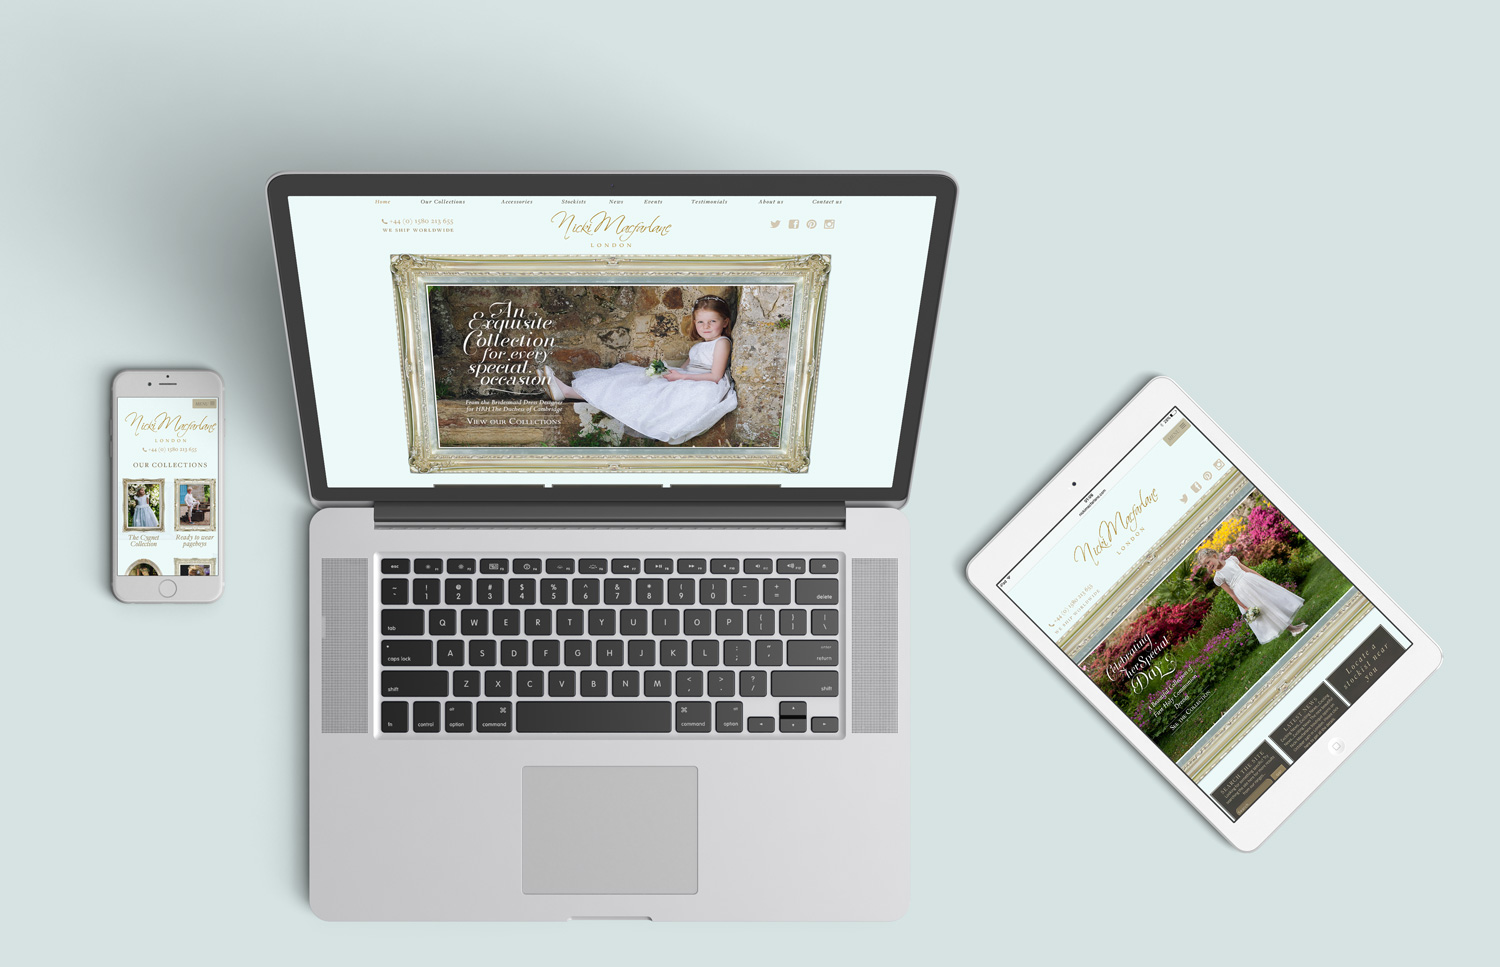 Website Redesign for Bridesmaid & Flower Girl Dress Designer Nicki Macfarlane